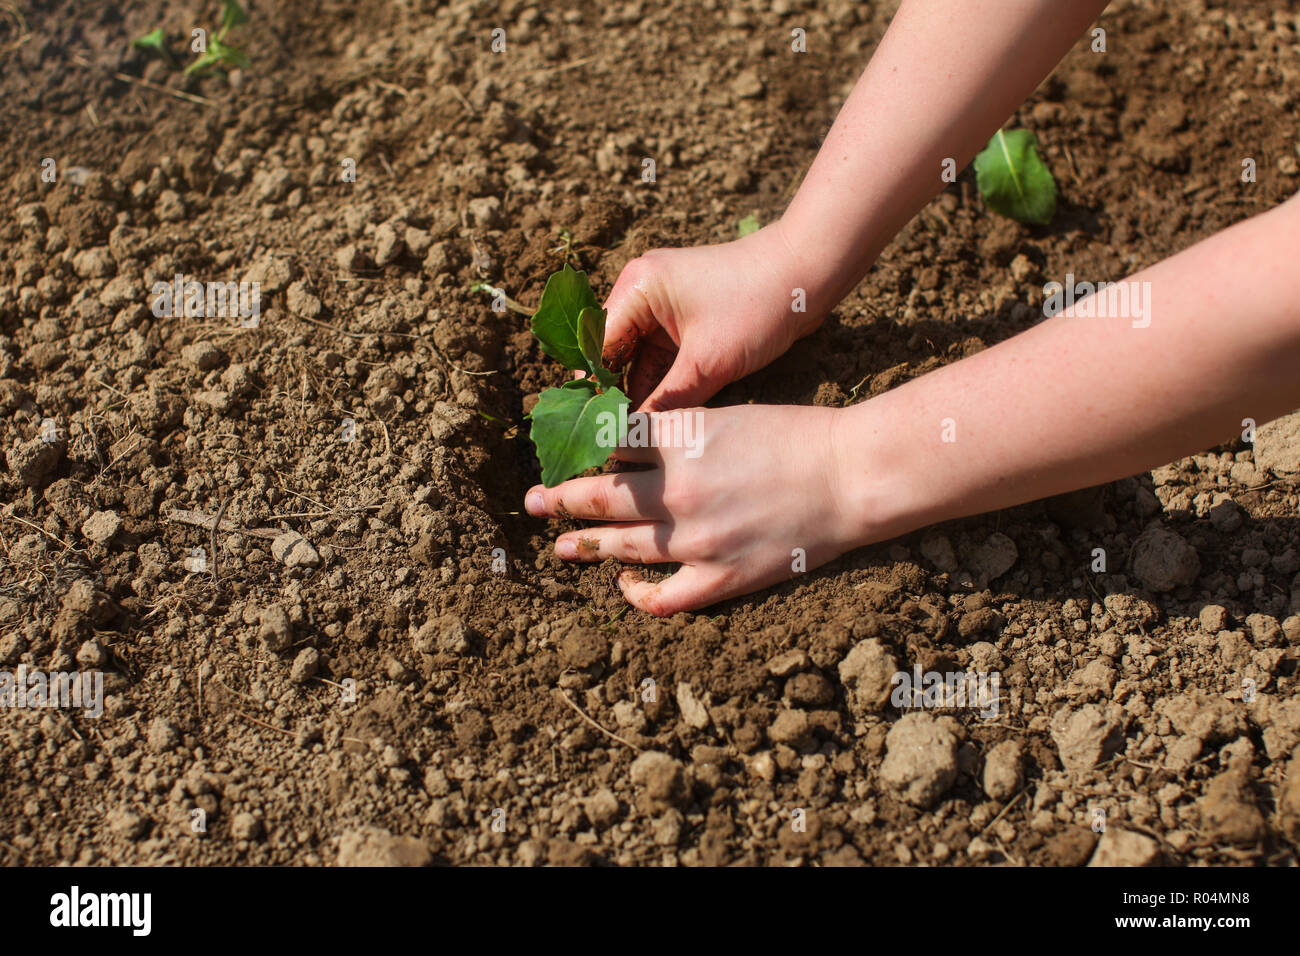 Woman hands planting young seedling plant into wet garden soil, sun shining on green nurseling. - Stock Image